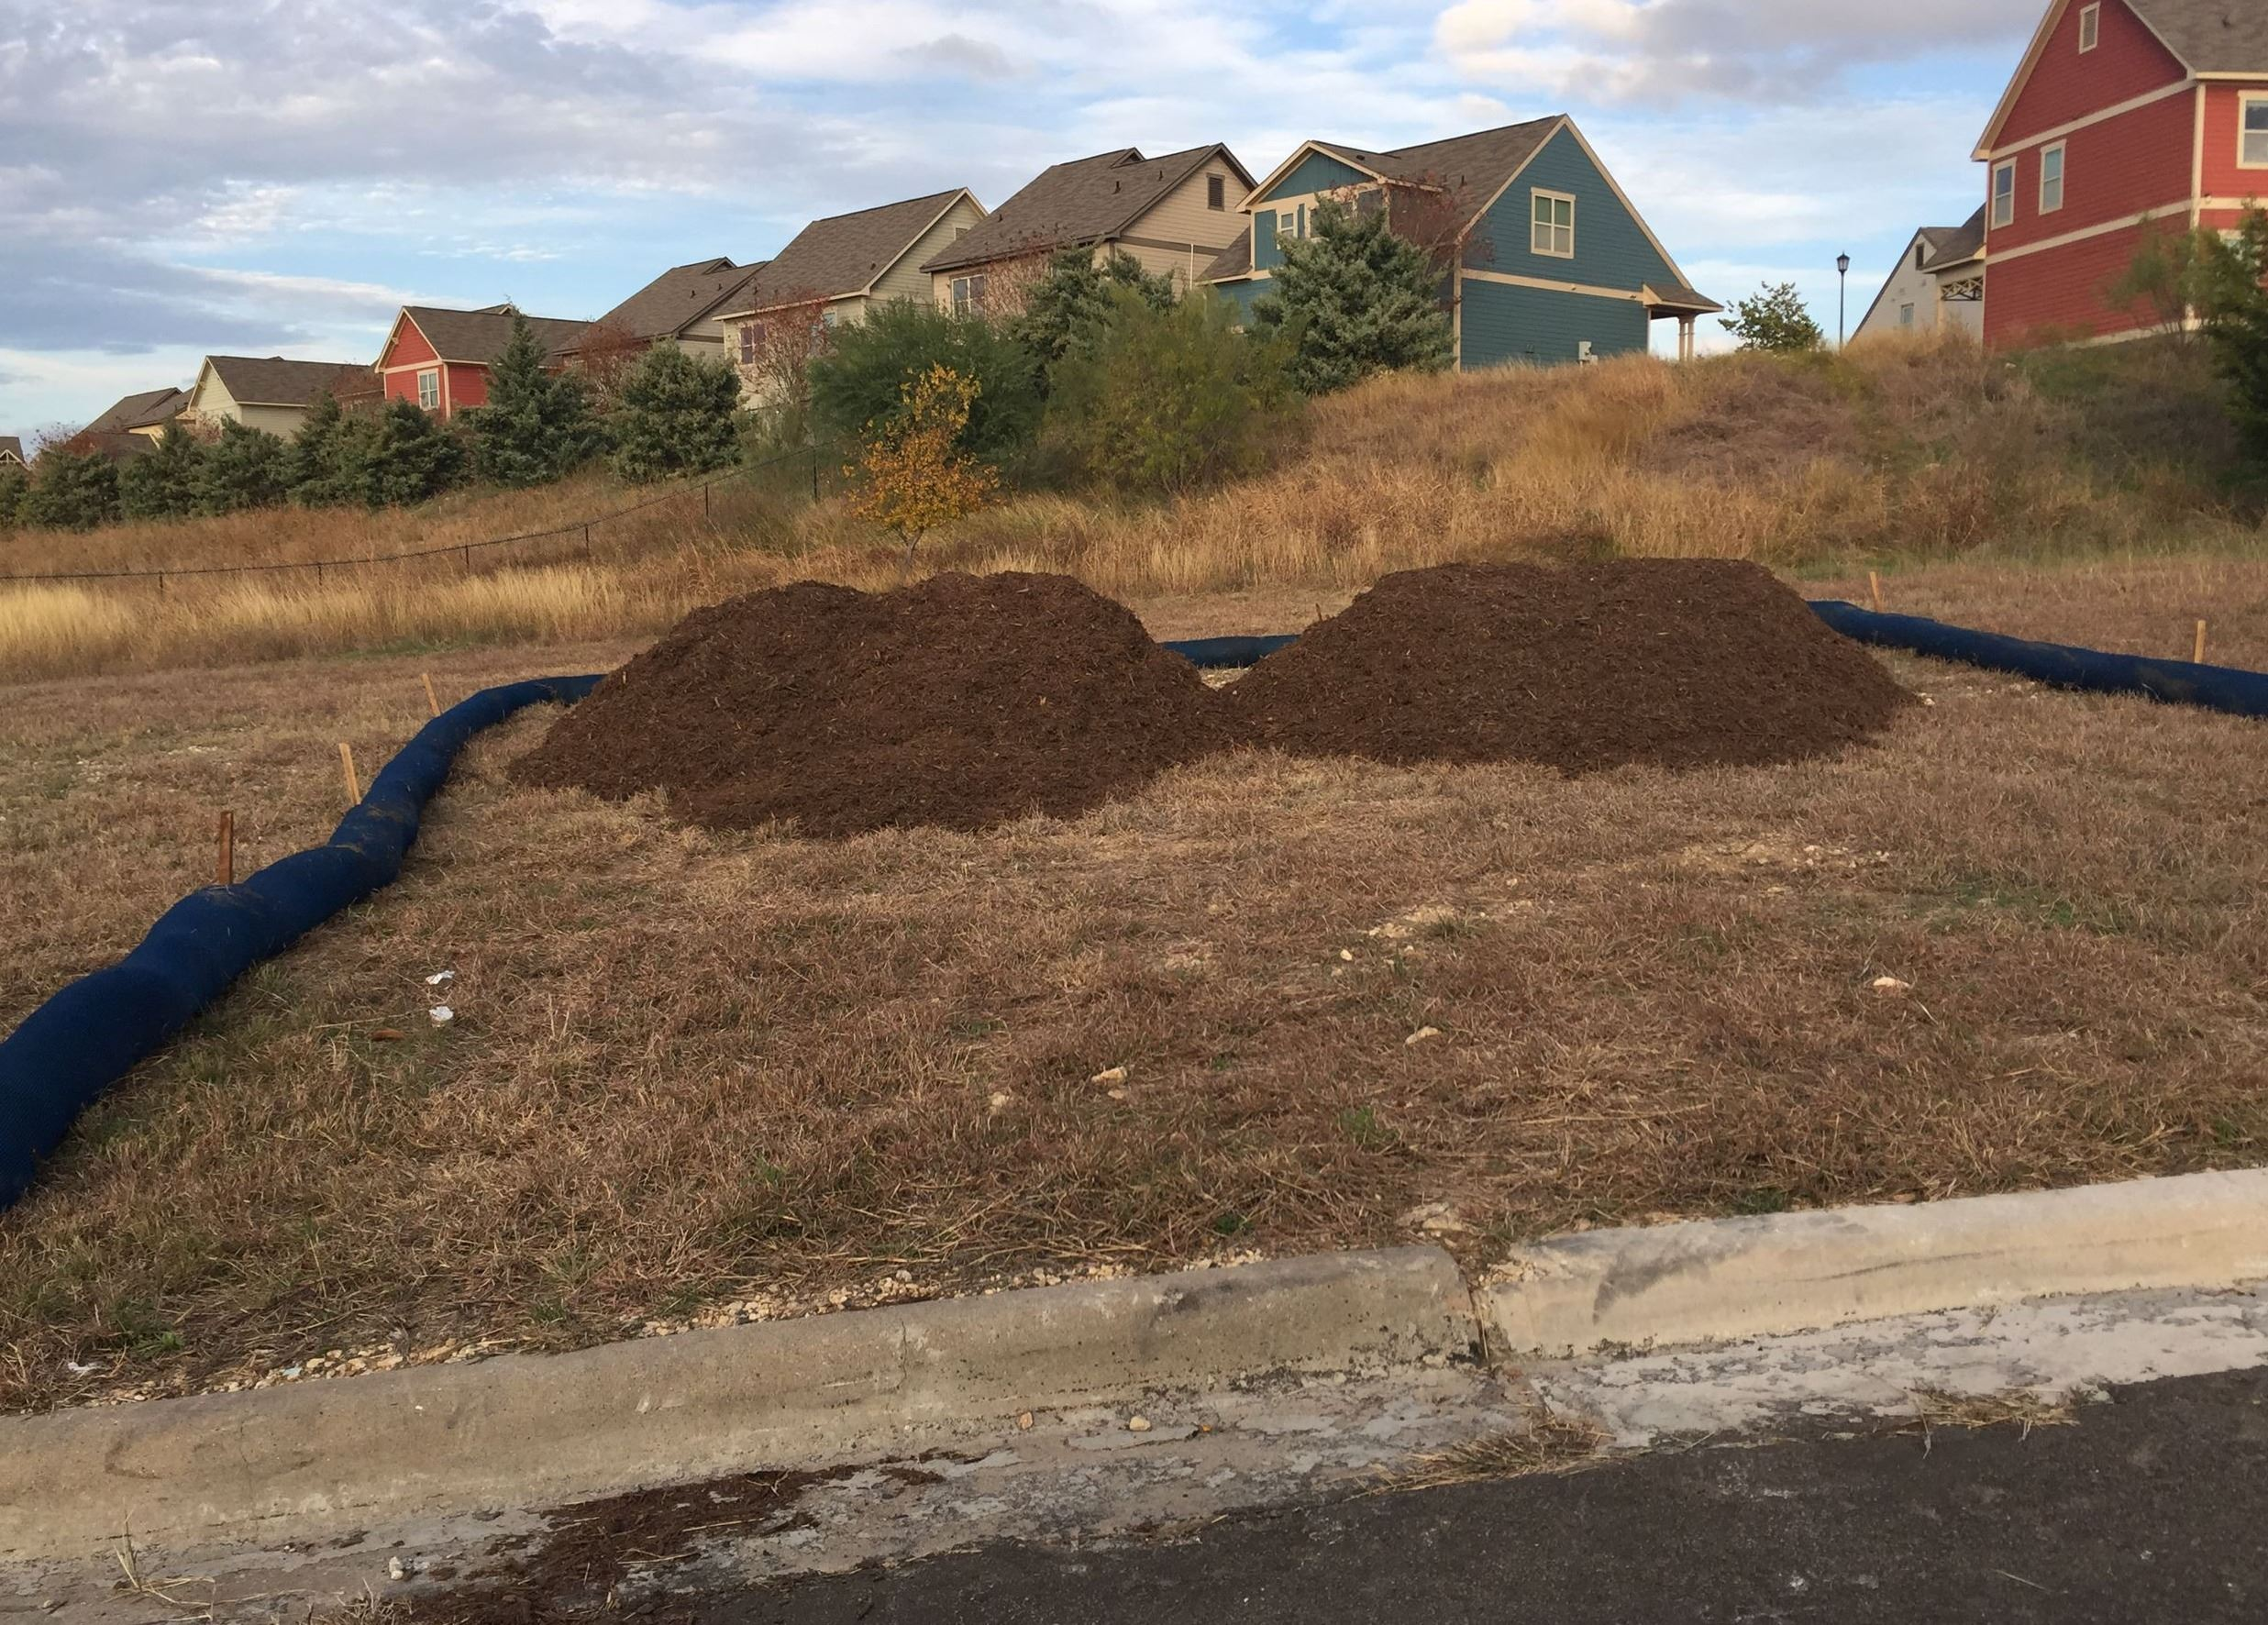 Photo of mulch piles available on Archie St.